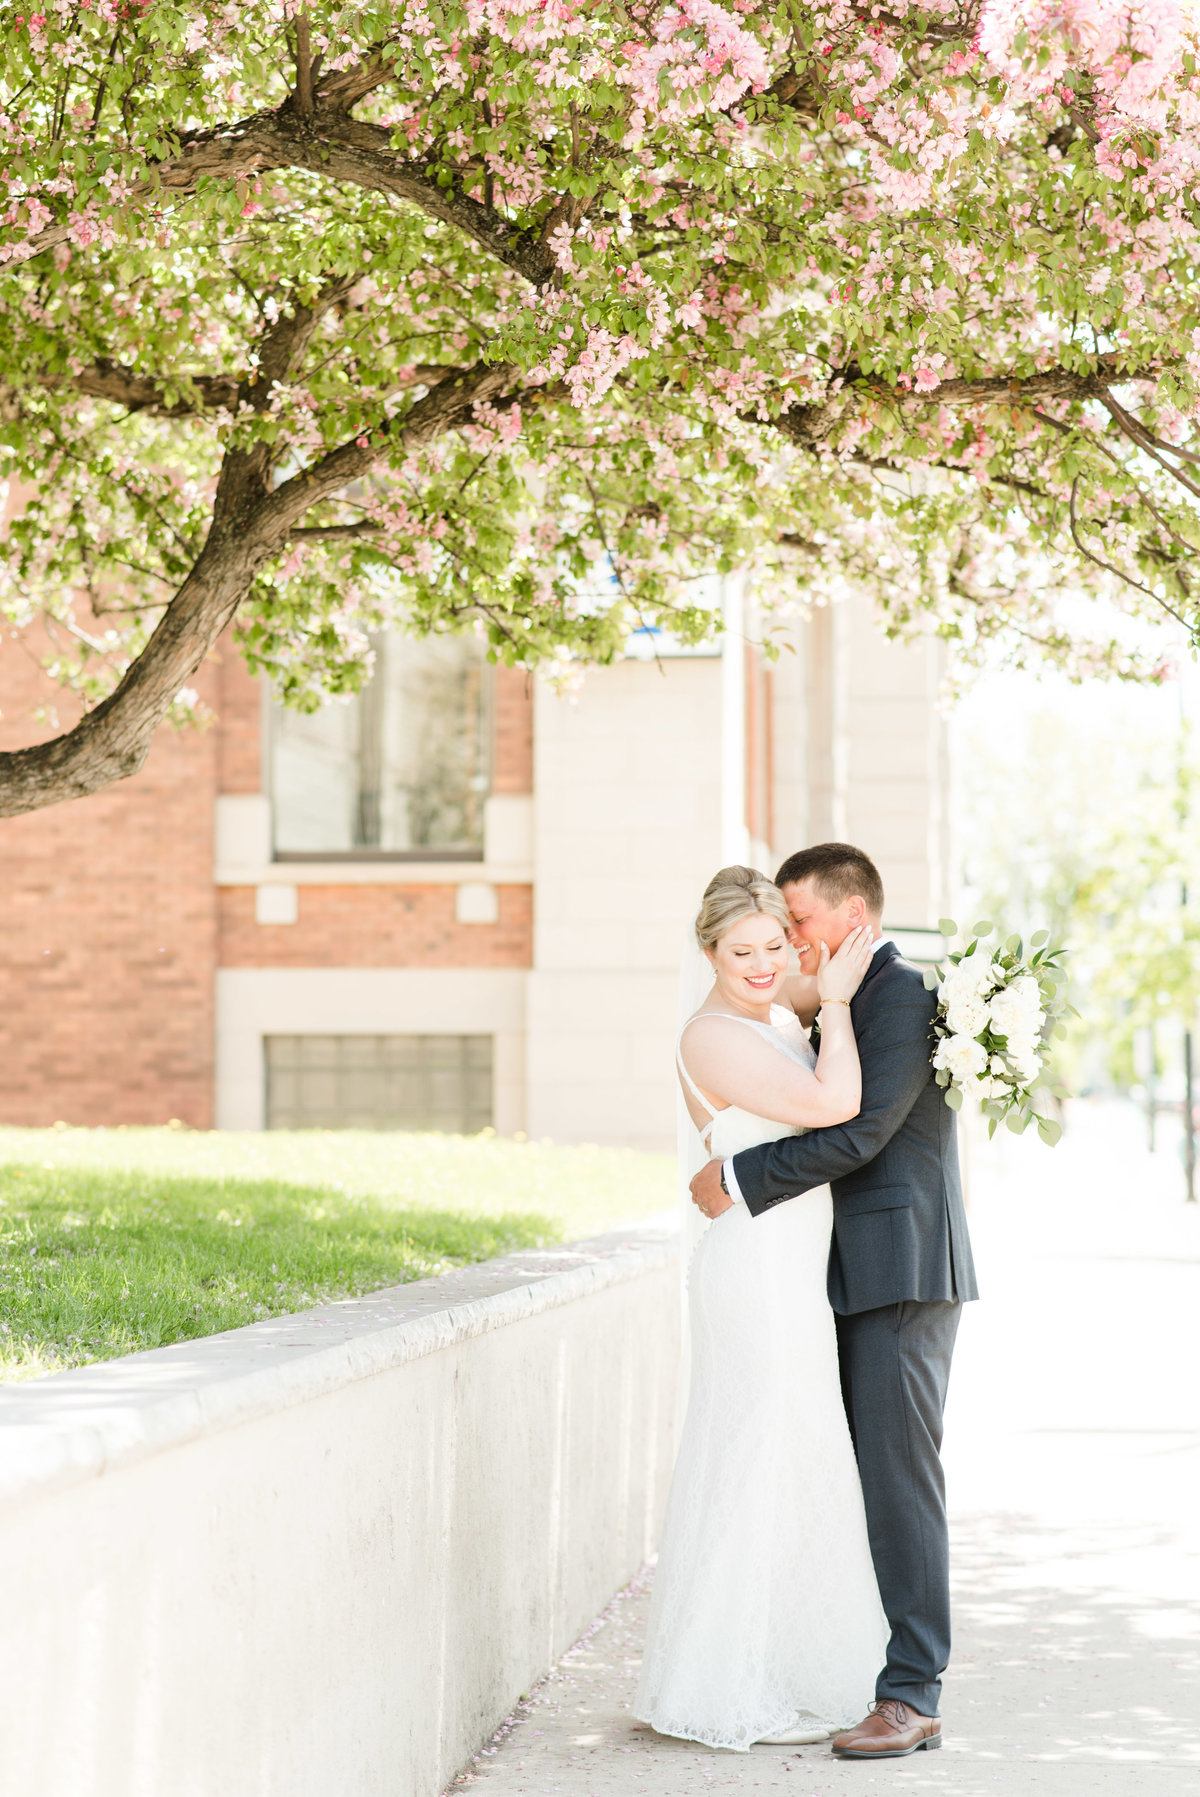 A bride and groom pose under a blossoming tree during their summer wedding in Thunder Bay